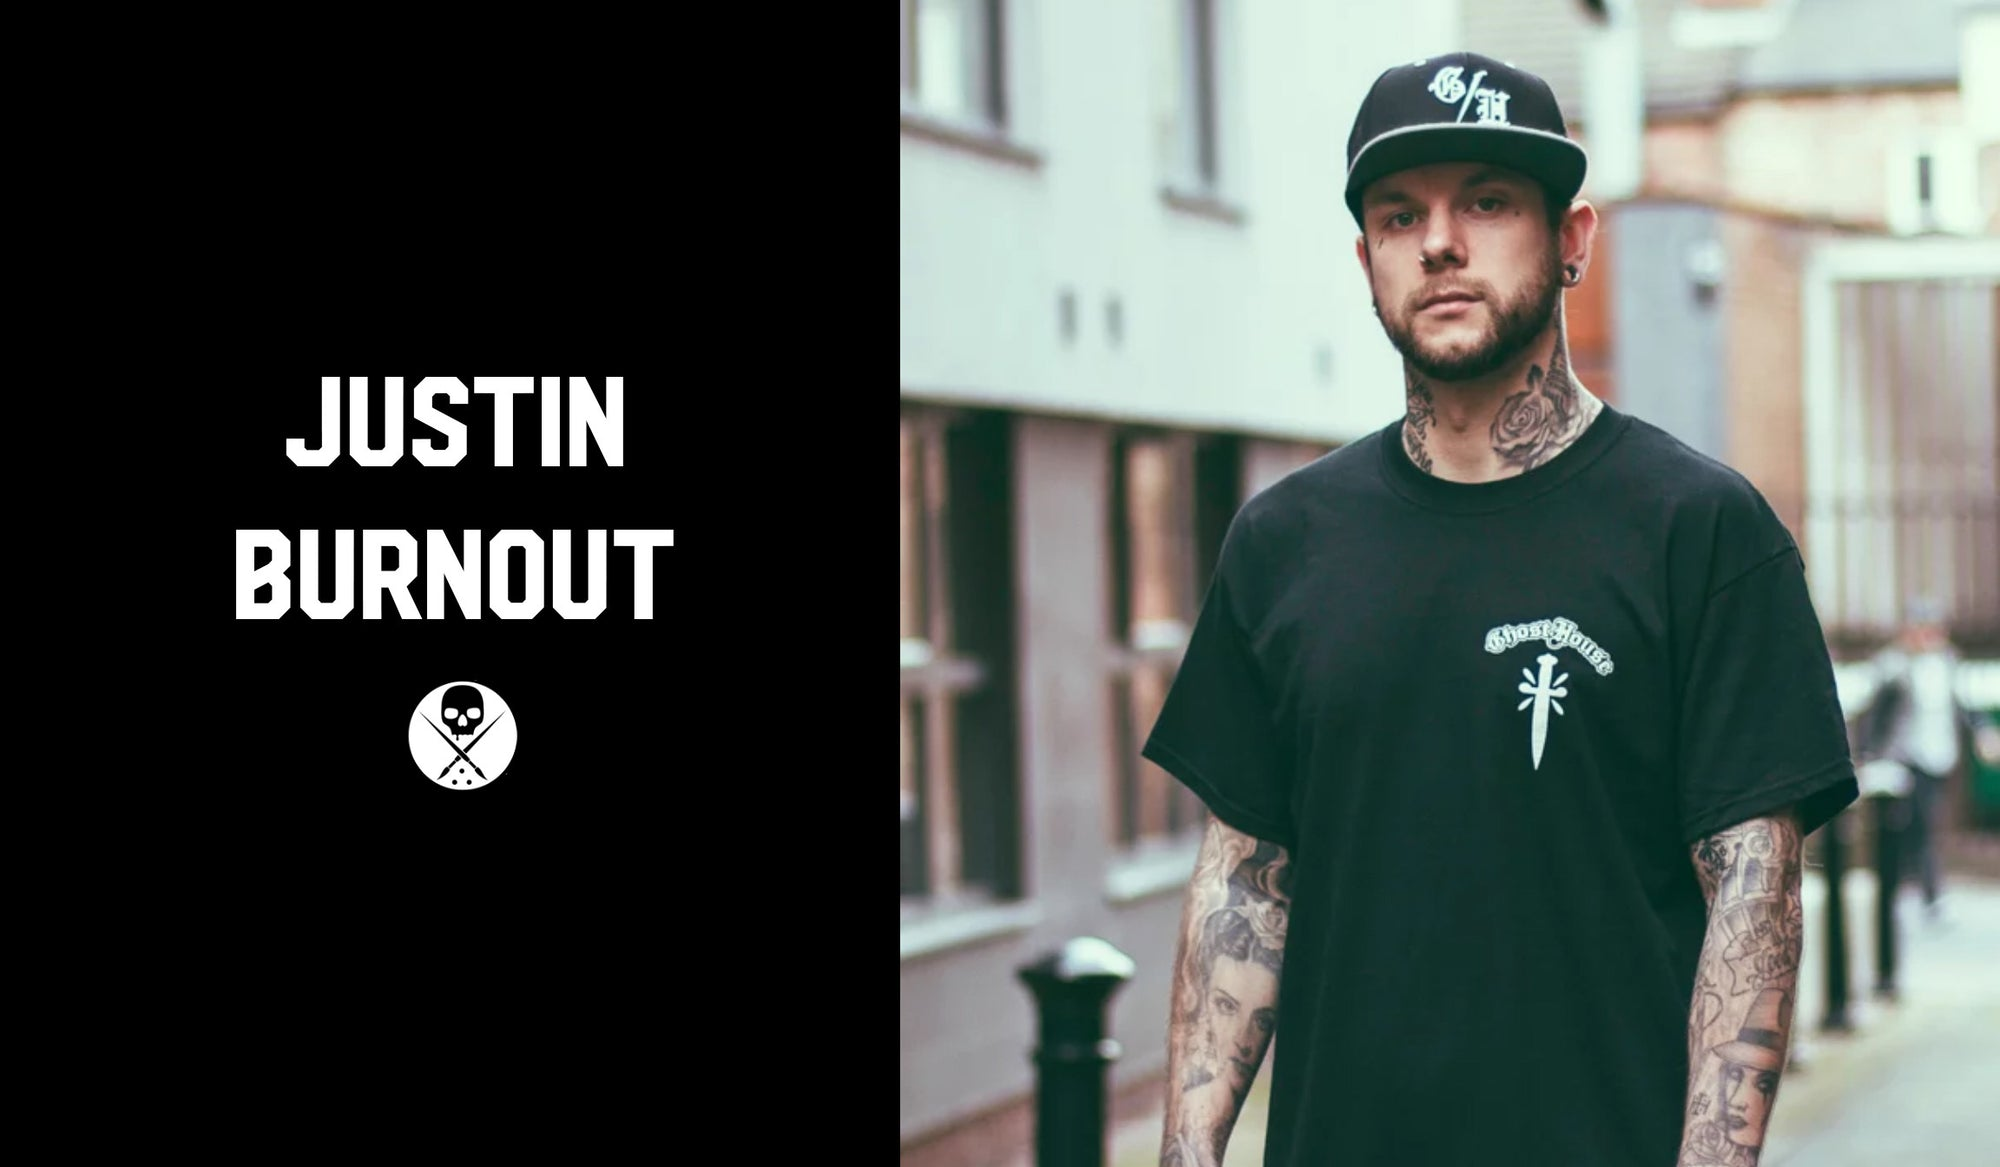 Justin Burnout - Tattoo Artist Shirt Series